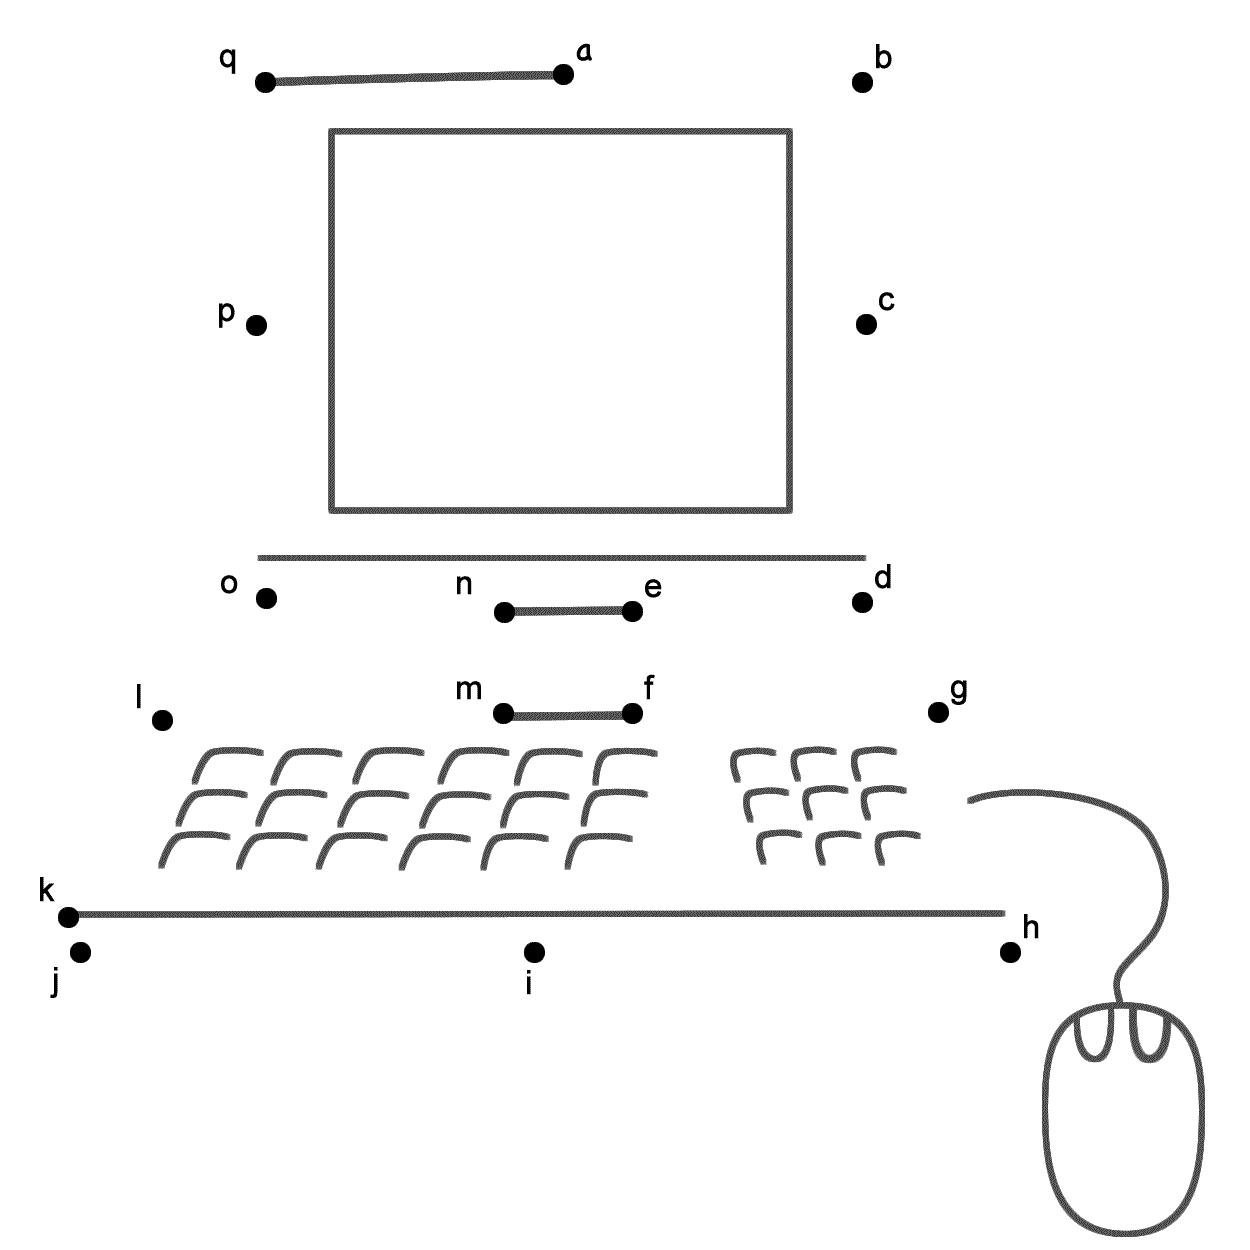 Computer Connect the Dots by Lowercase Letters Back to School – Parts of a Computer Worksheet